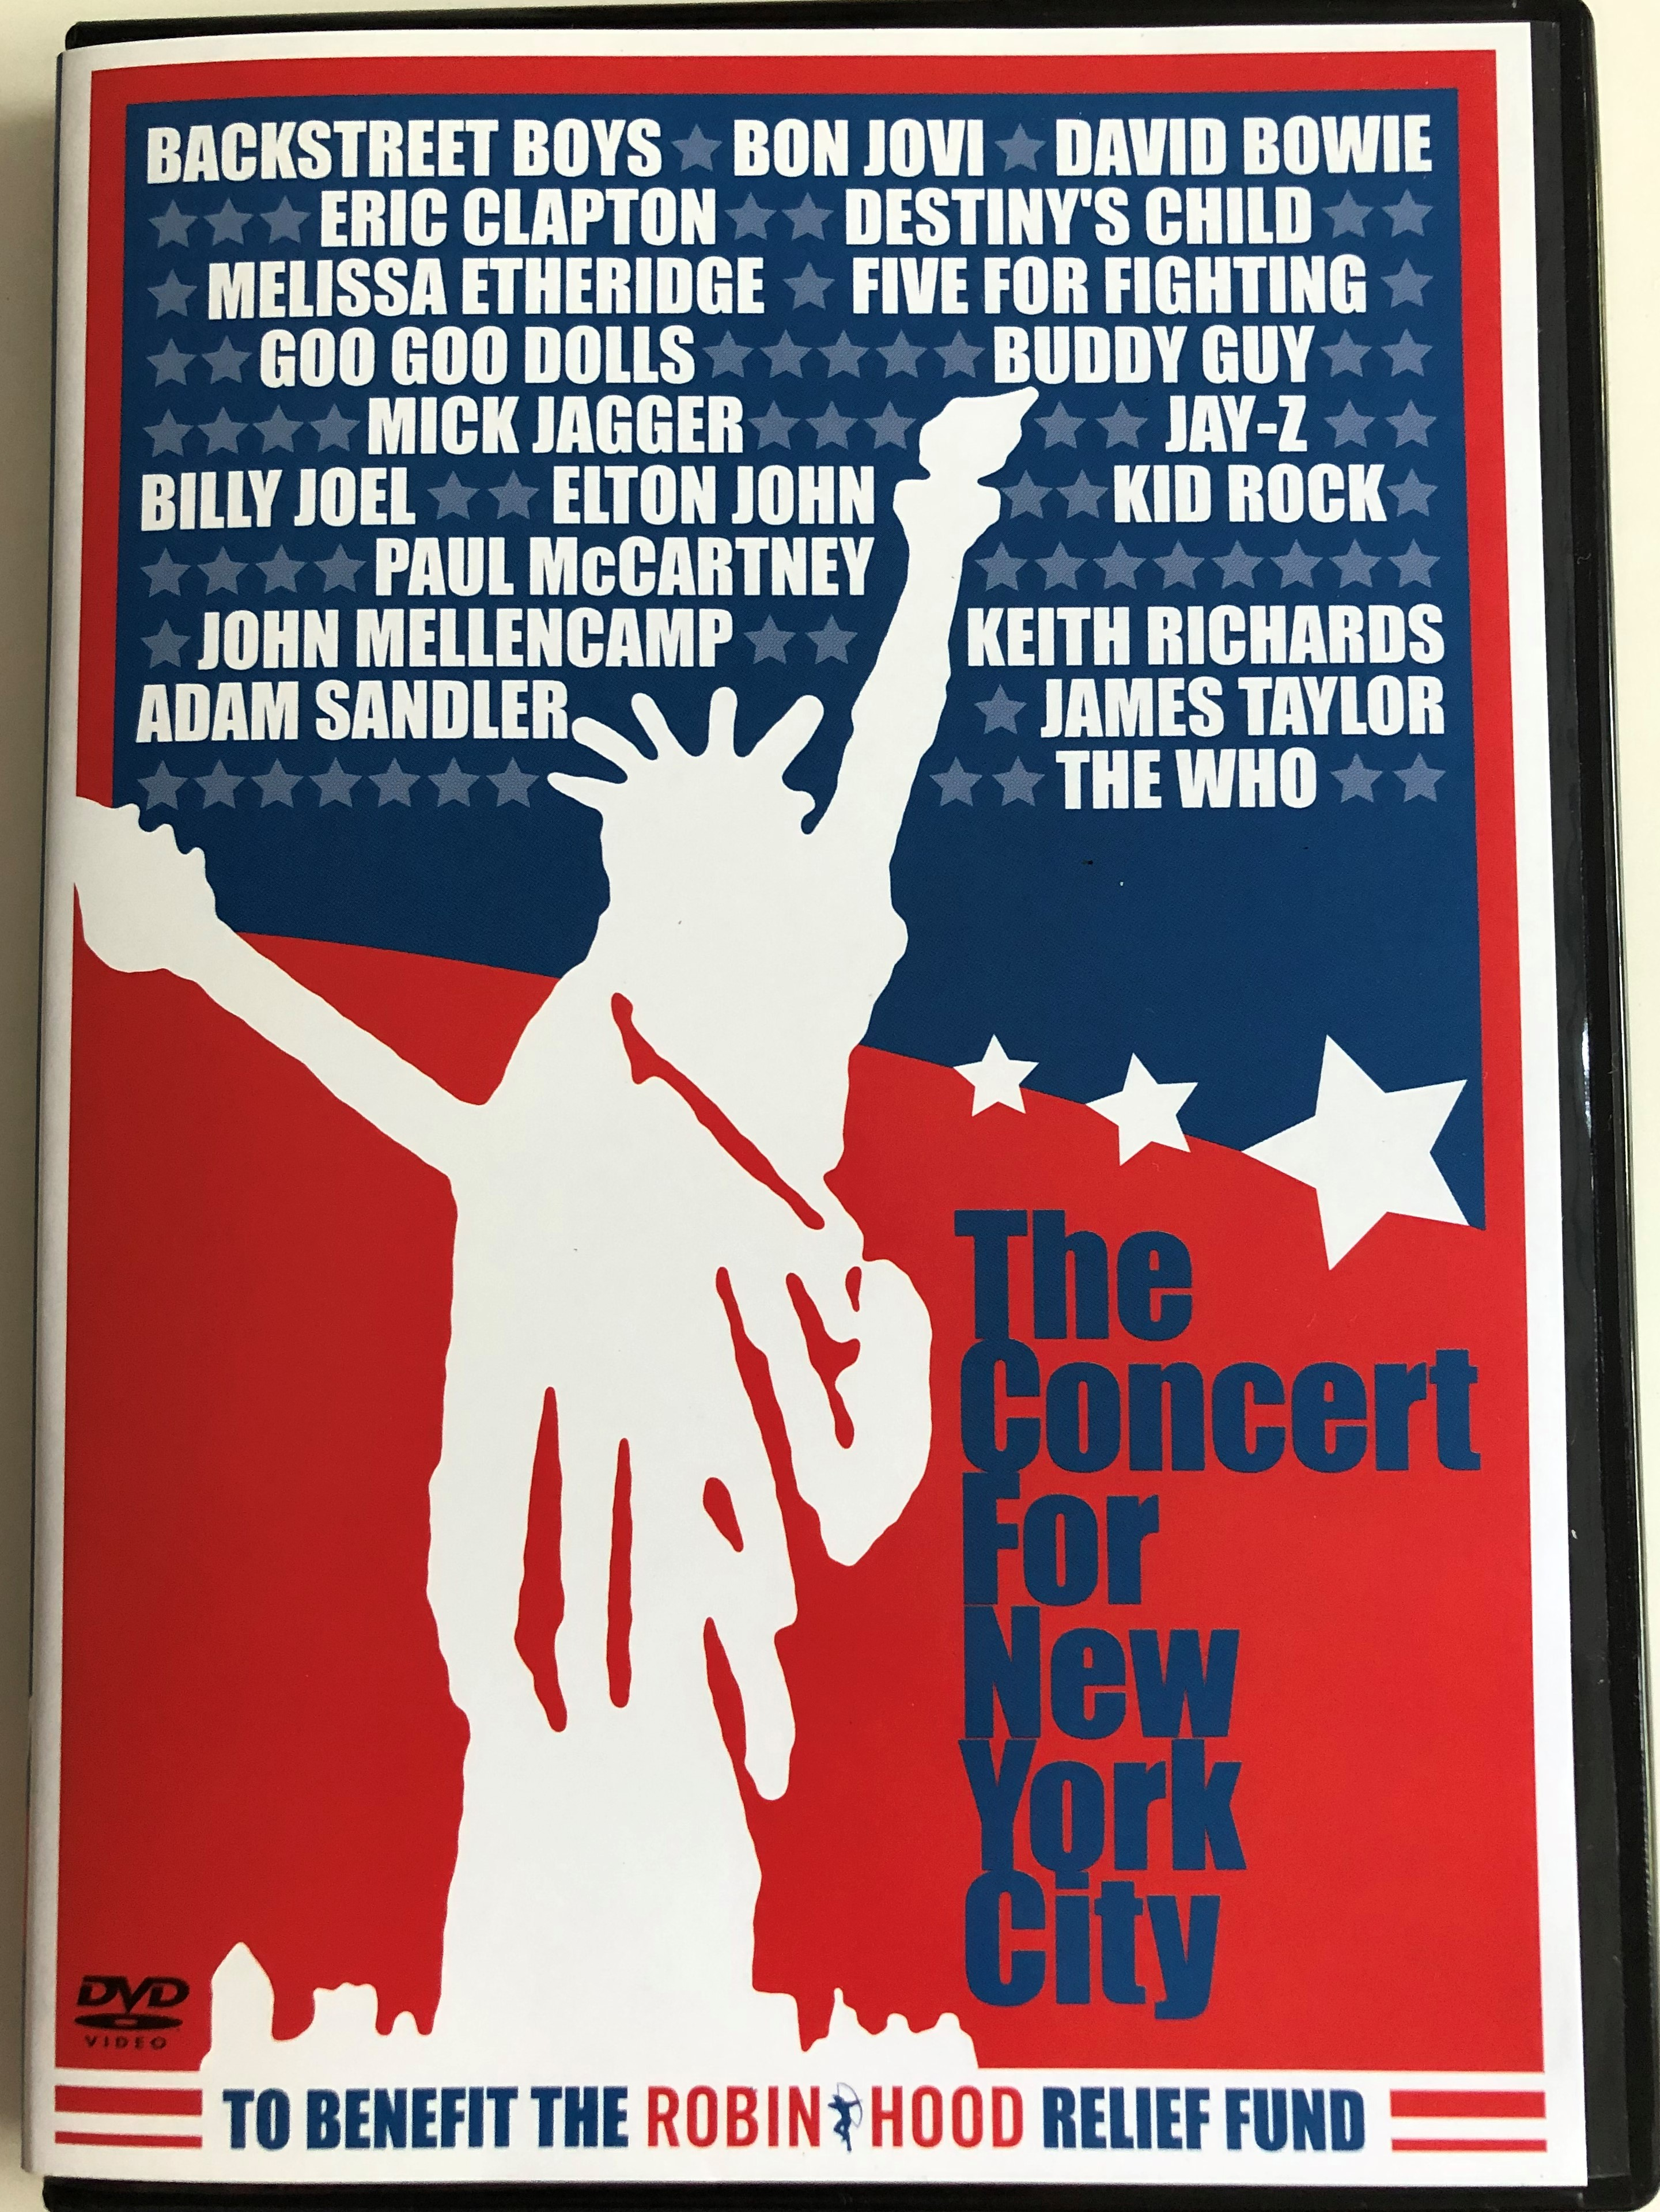 the-concert-for-new-york-city-dvd-2001-2-disc-set-to-benefit-the-robin-hood-relief-fund-backstreet-boys-bon-jovi-eric-clapton-mick-jagger-elton-john-keith-richards-the-who-1-.jpg